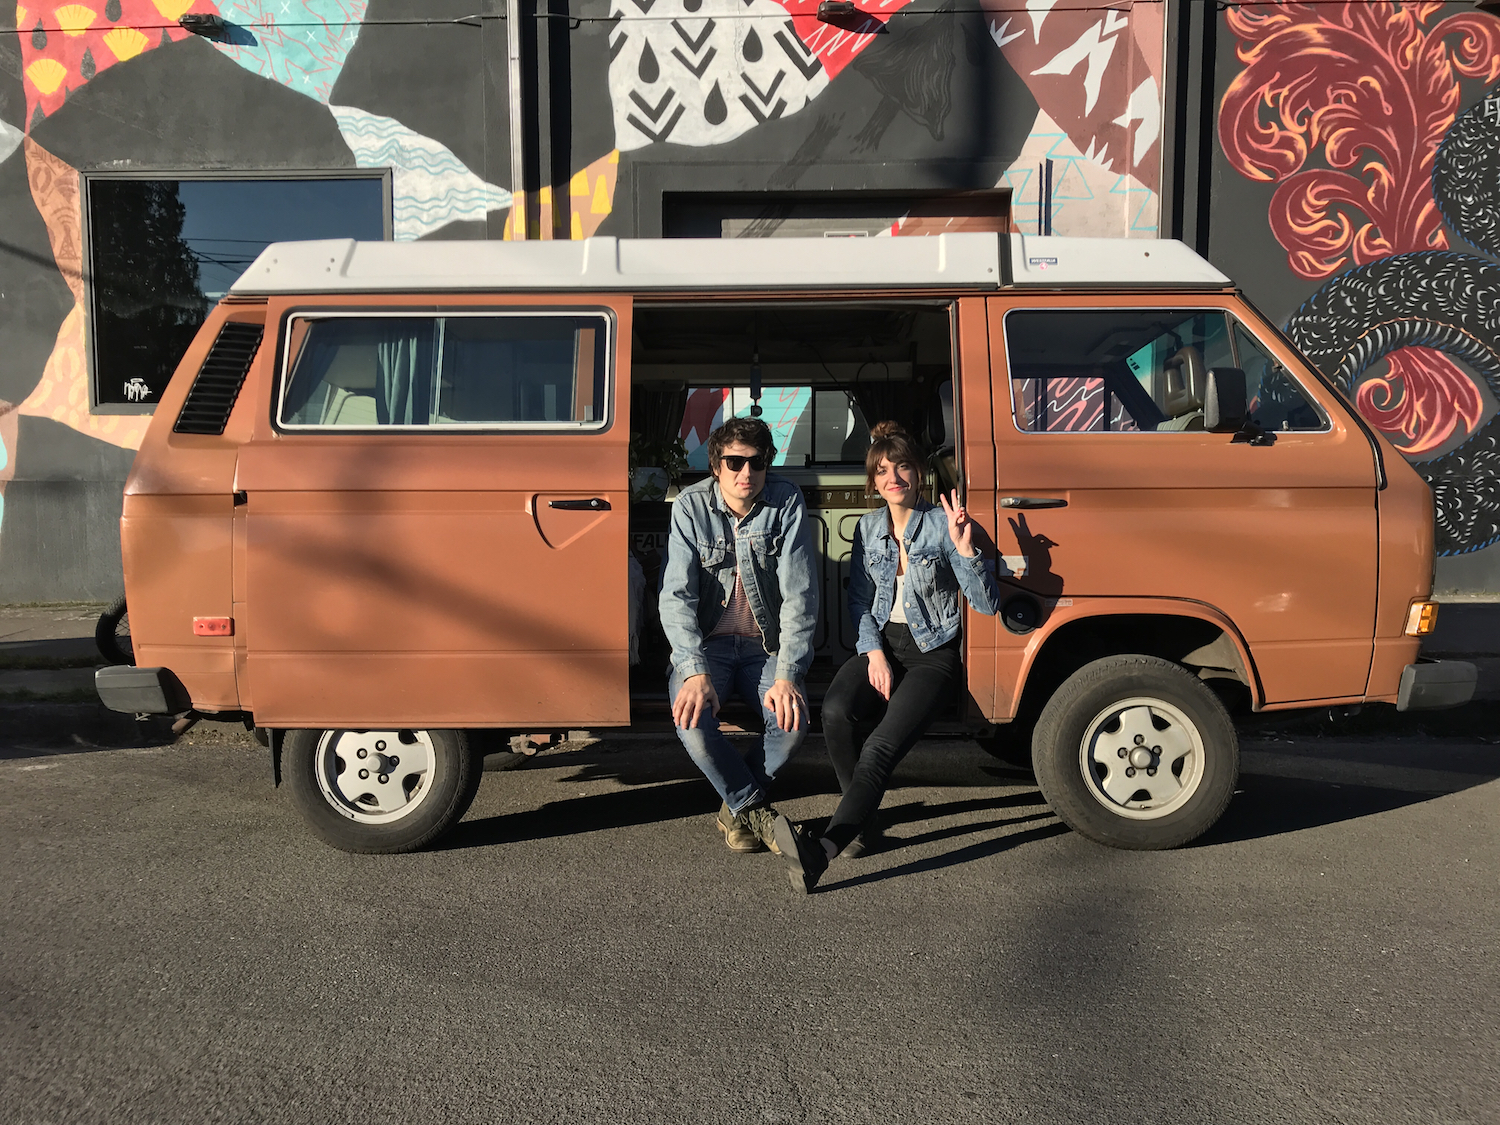 Ryan Rebo and Casey Wheeler in front of the vintage Westfalia